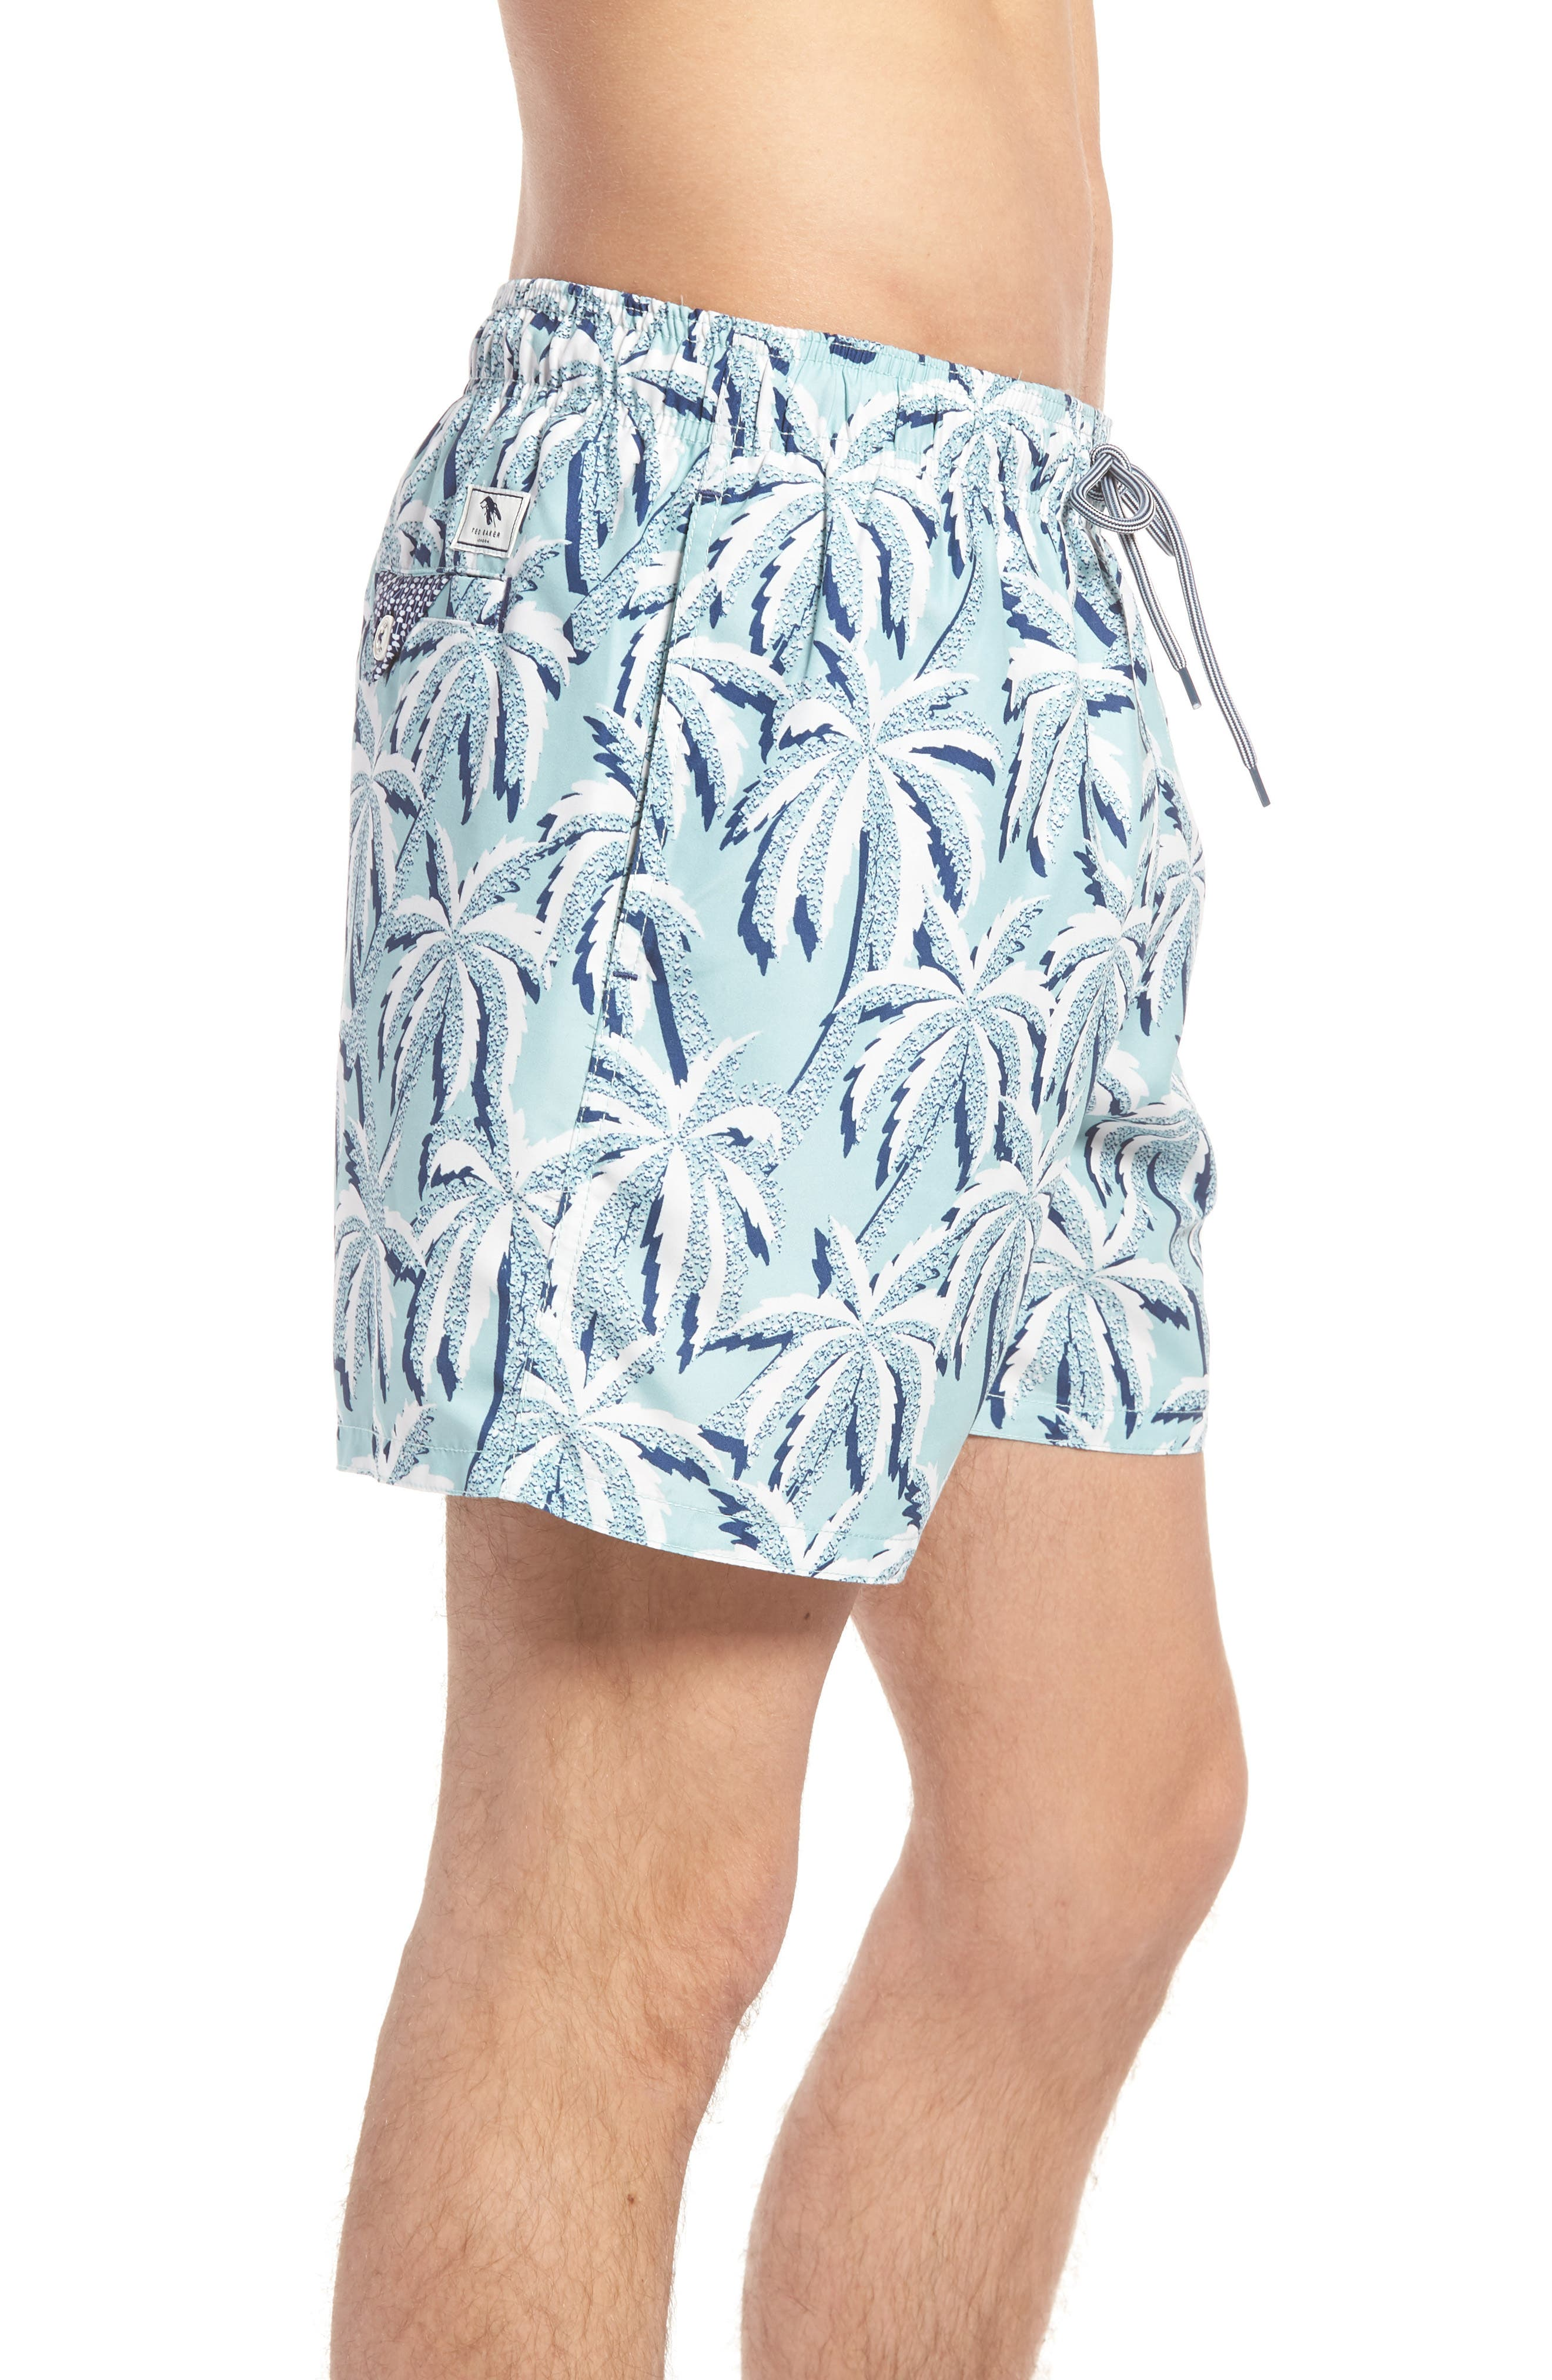 Hoppah Palm Print Swim Shorts,                             Alternate thumbnail 3, color,                             330